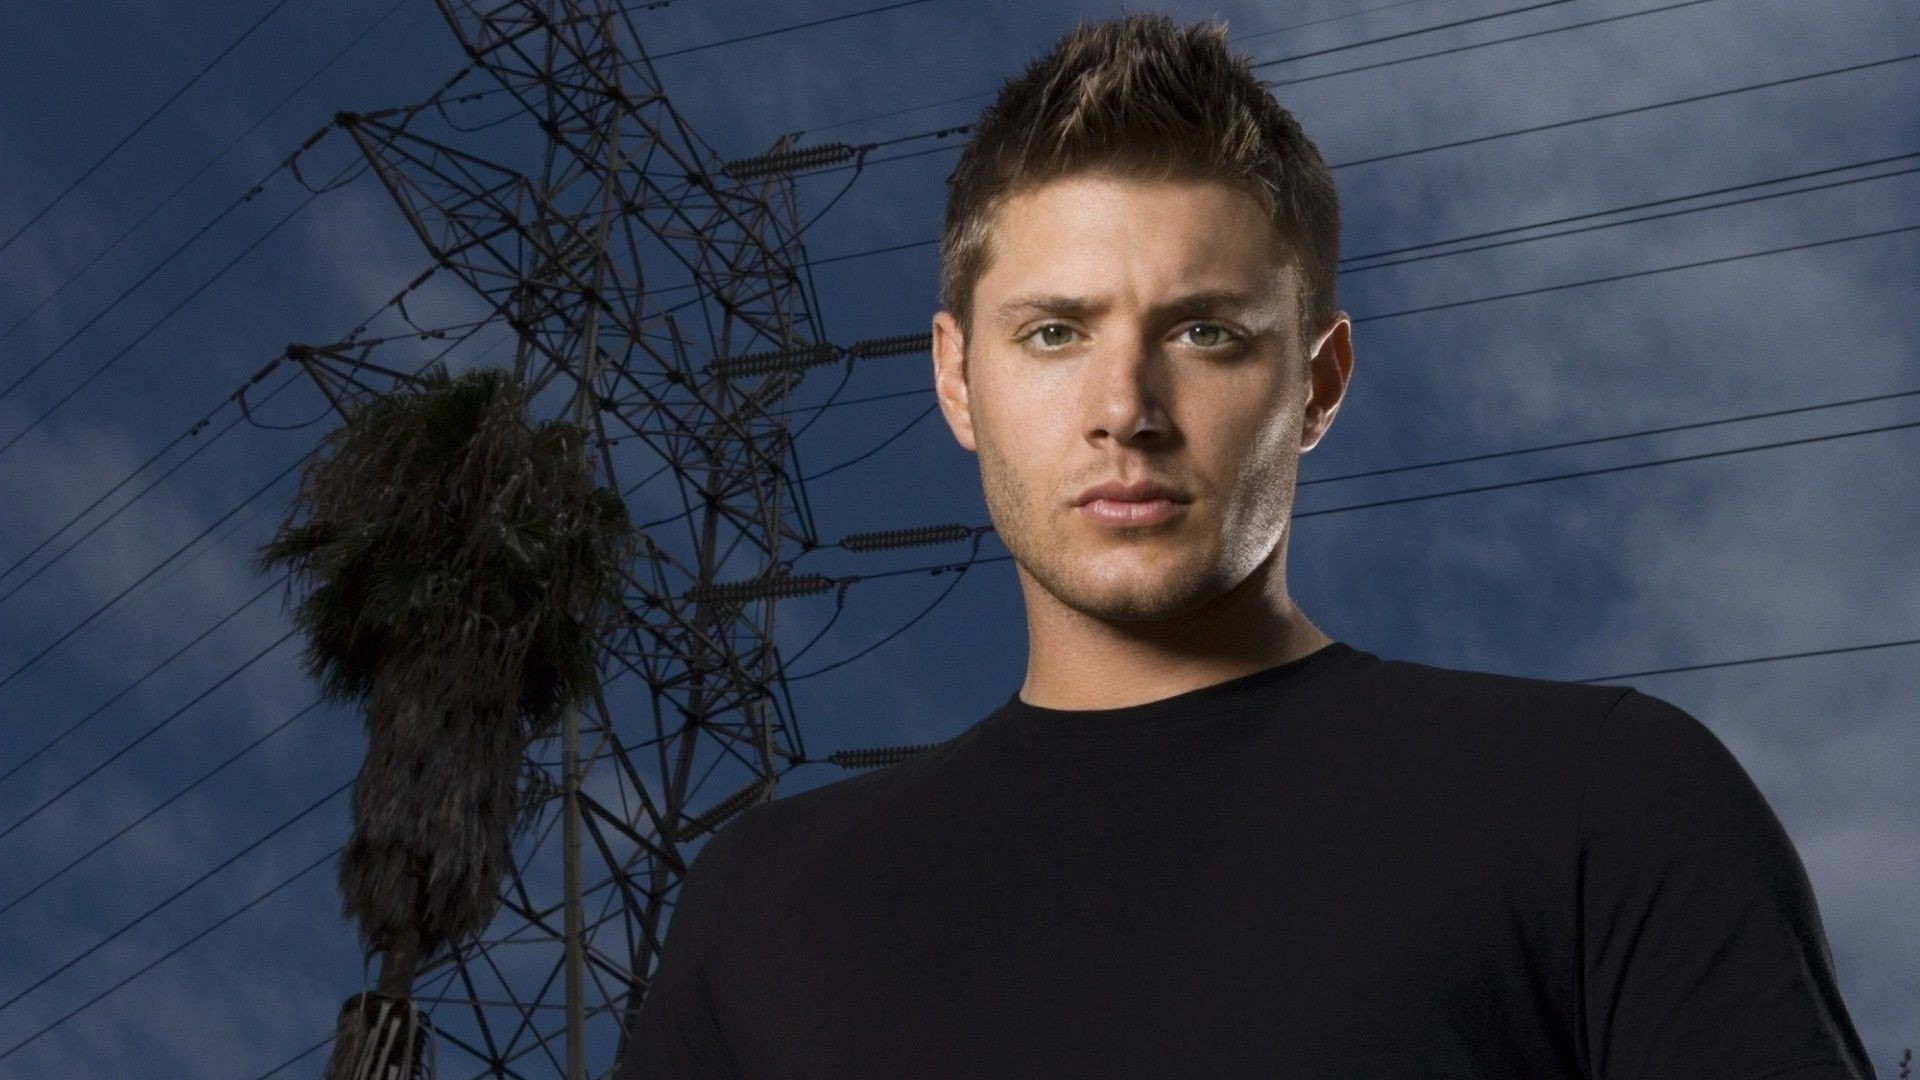 Jensen Ackles Wallpaper 1920x1080